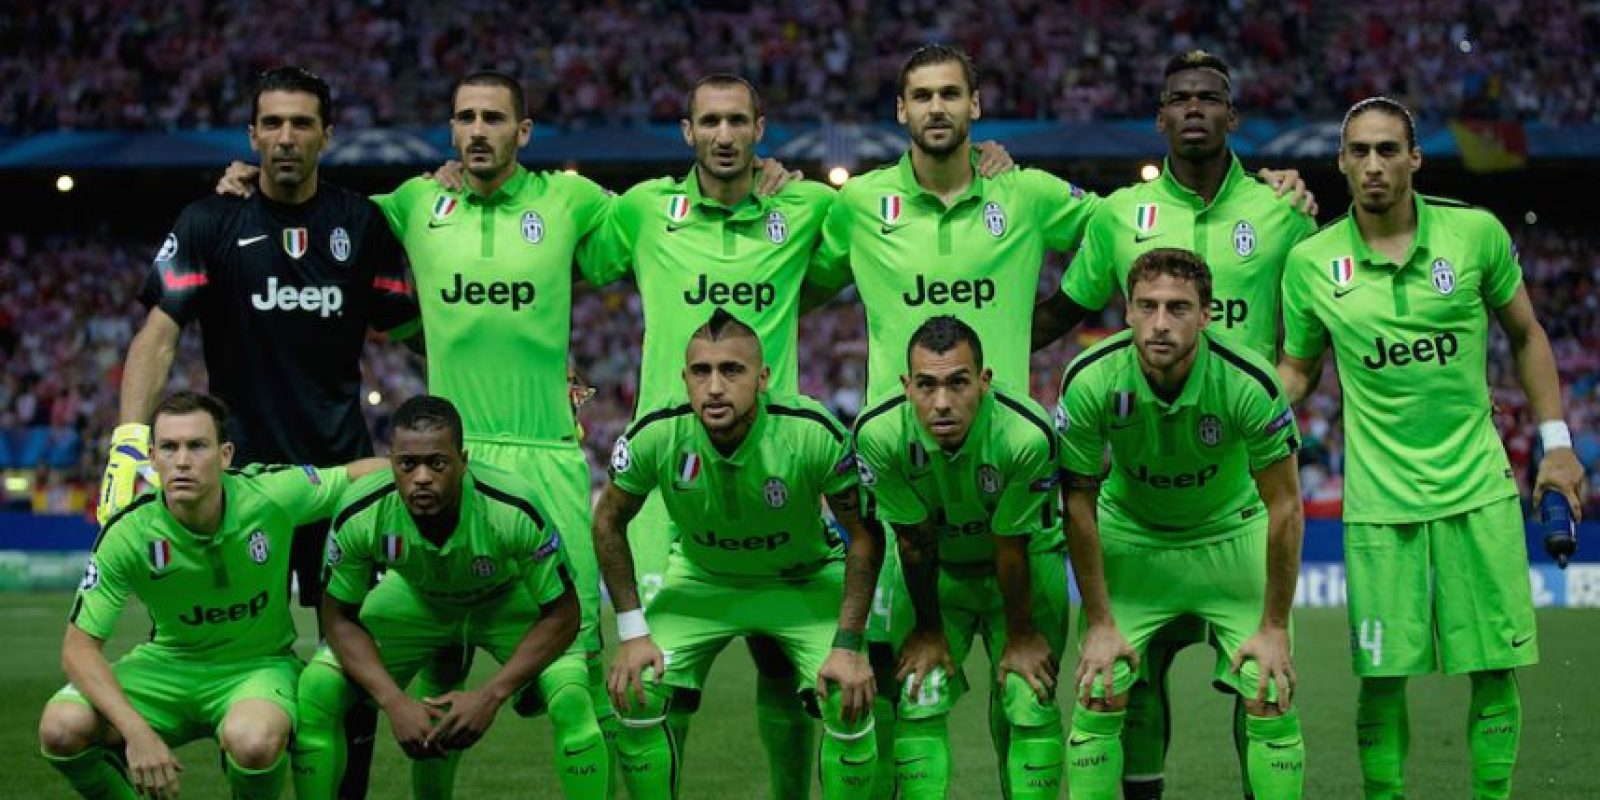 Juventus FC Foto: Getty Images